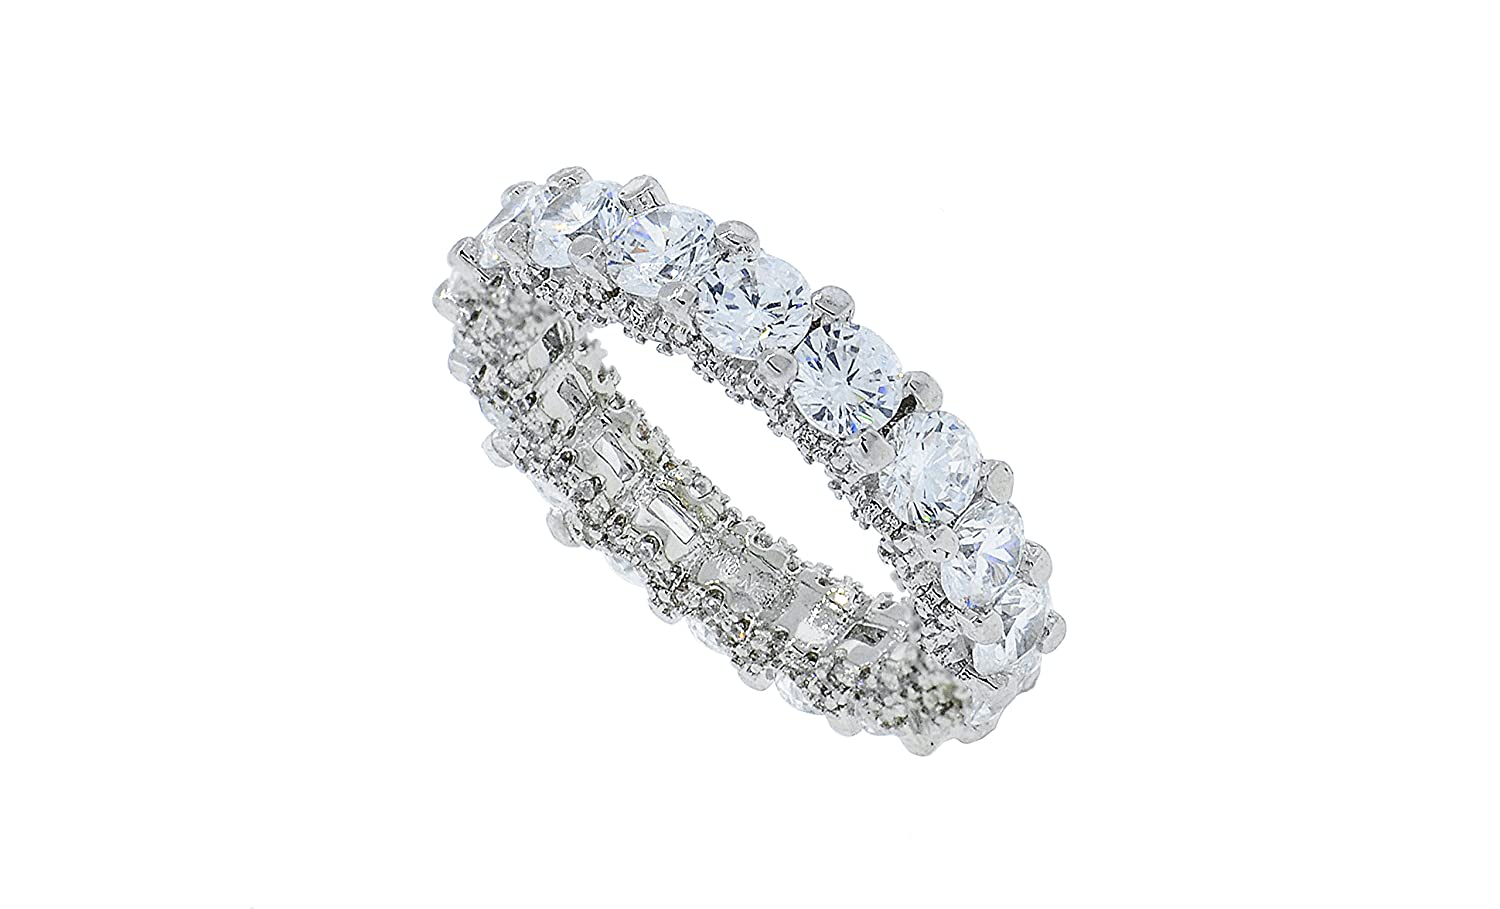 NYC Sterling Womens 4mm Round Pave Cubic Zirconia Eternity Wedding Band Sizes 5-9 R1510596